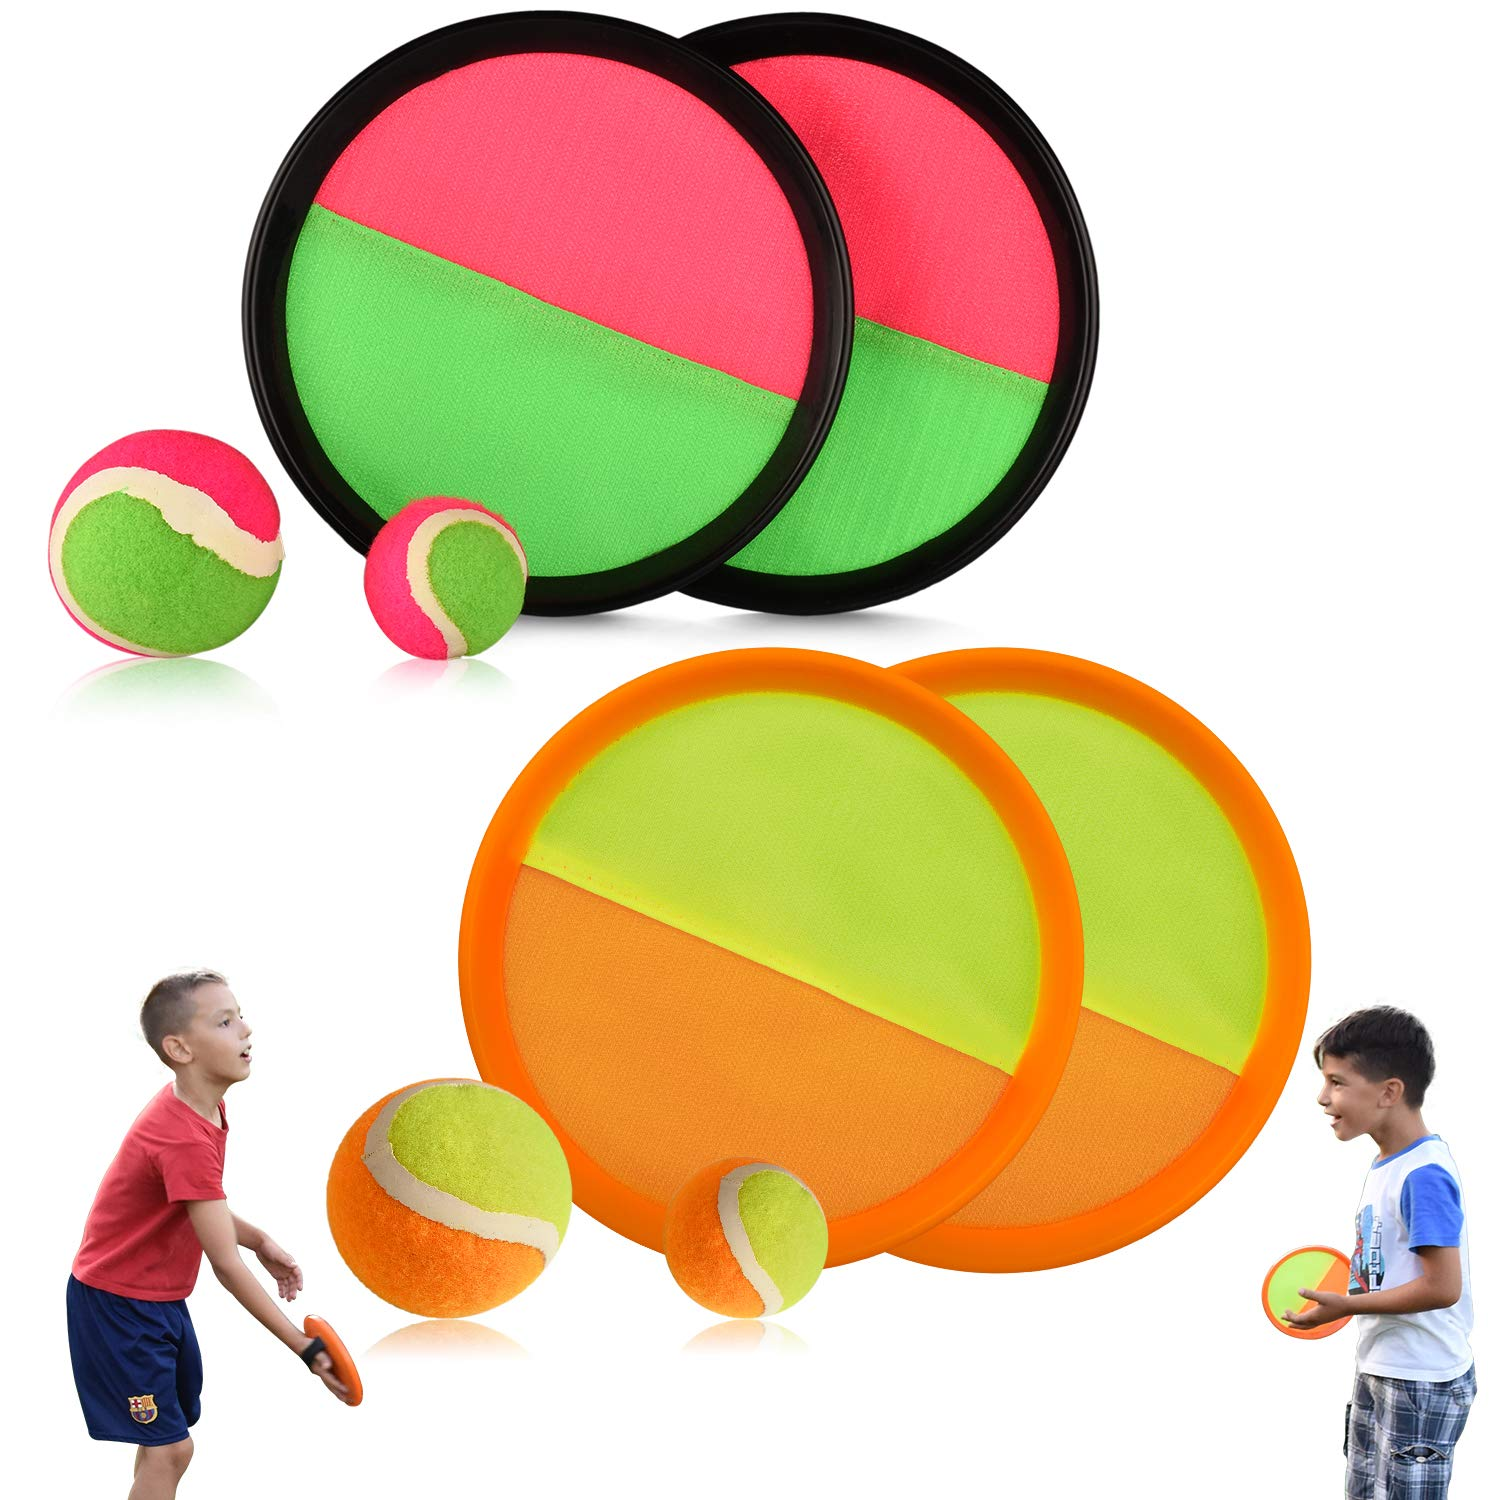 Abco Tech Paddle Toss and Catch Game Set - Self-Stick Disc Paddles and Toss Ball Sport Game - Equally Suitable Game for Kids